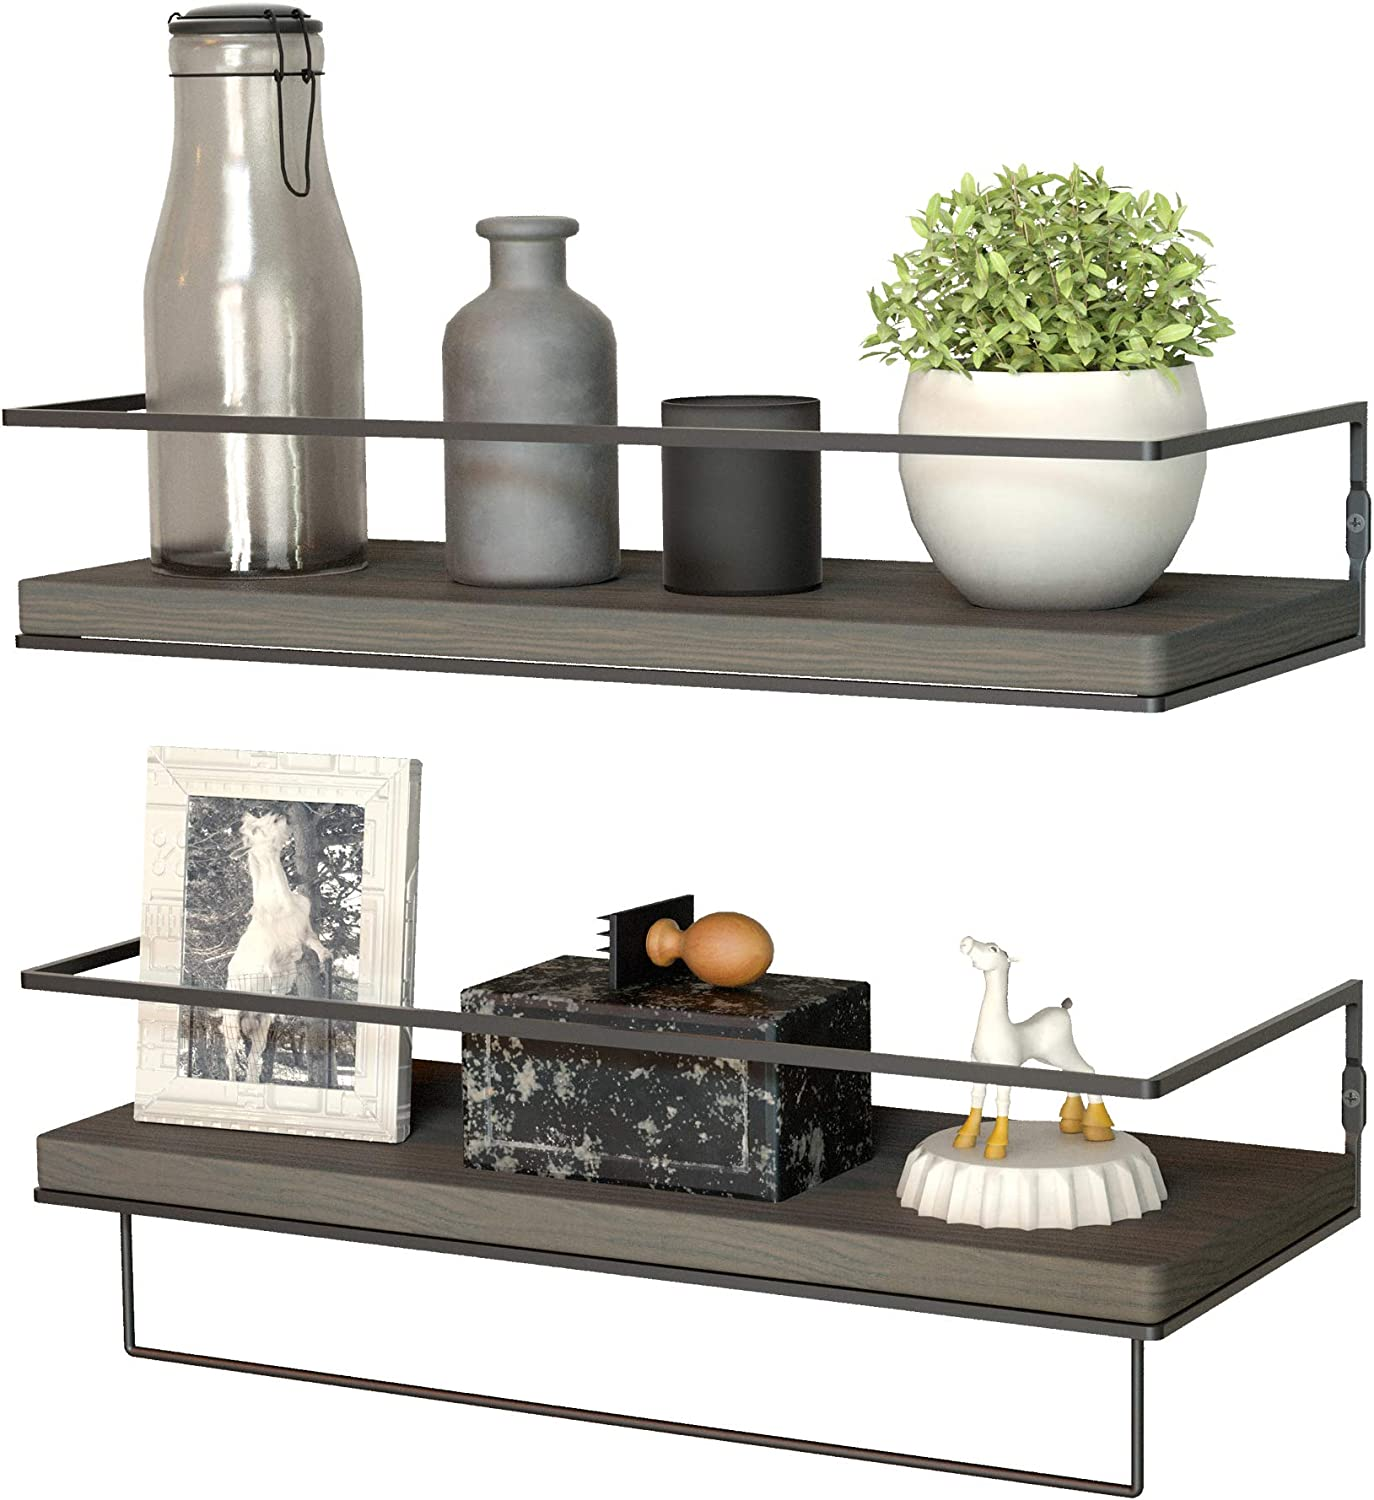 ZGO Floating Shelves Wall Mounted Set of 2,Rustic Wood Wall Decor Storage Shelves with Black Metal Frame and Towel Rack for Bathroom, Bedroom, Living Room, Kitchen,Office